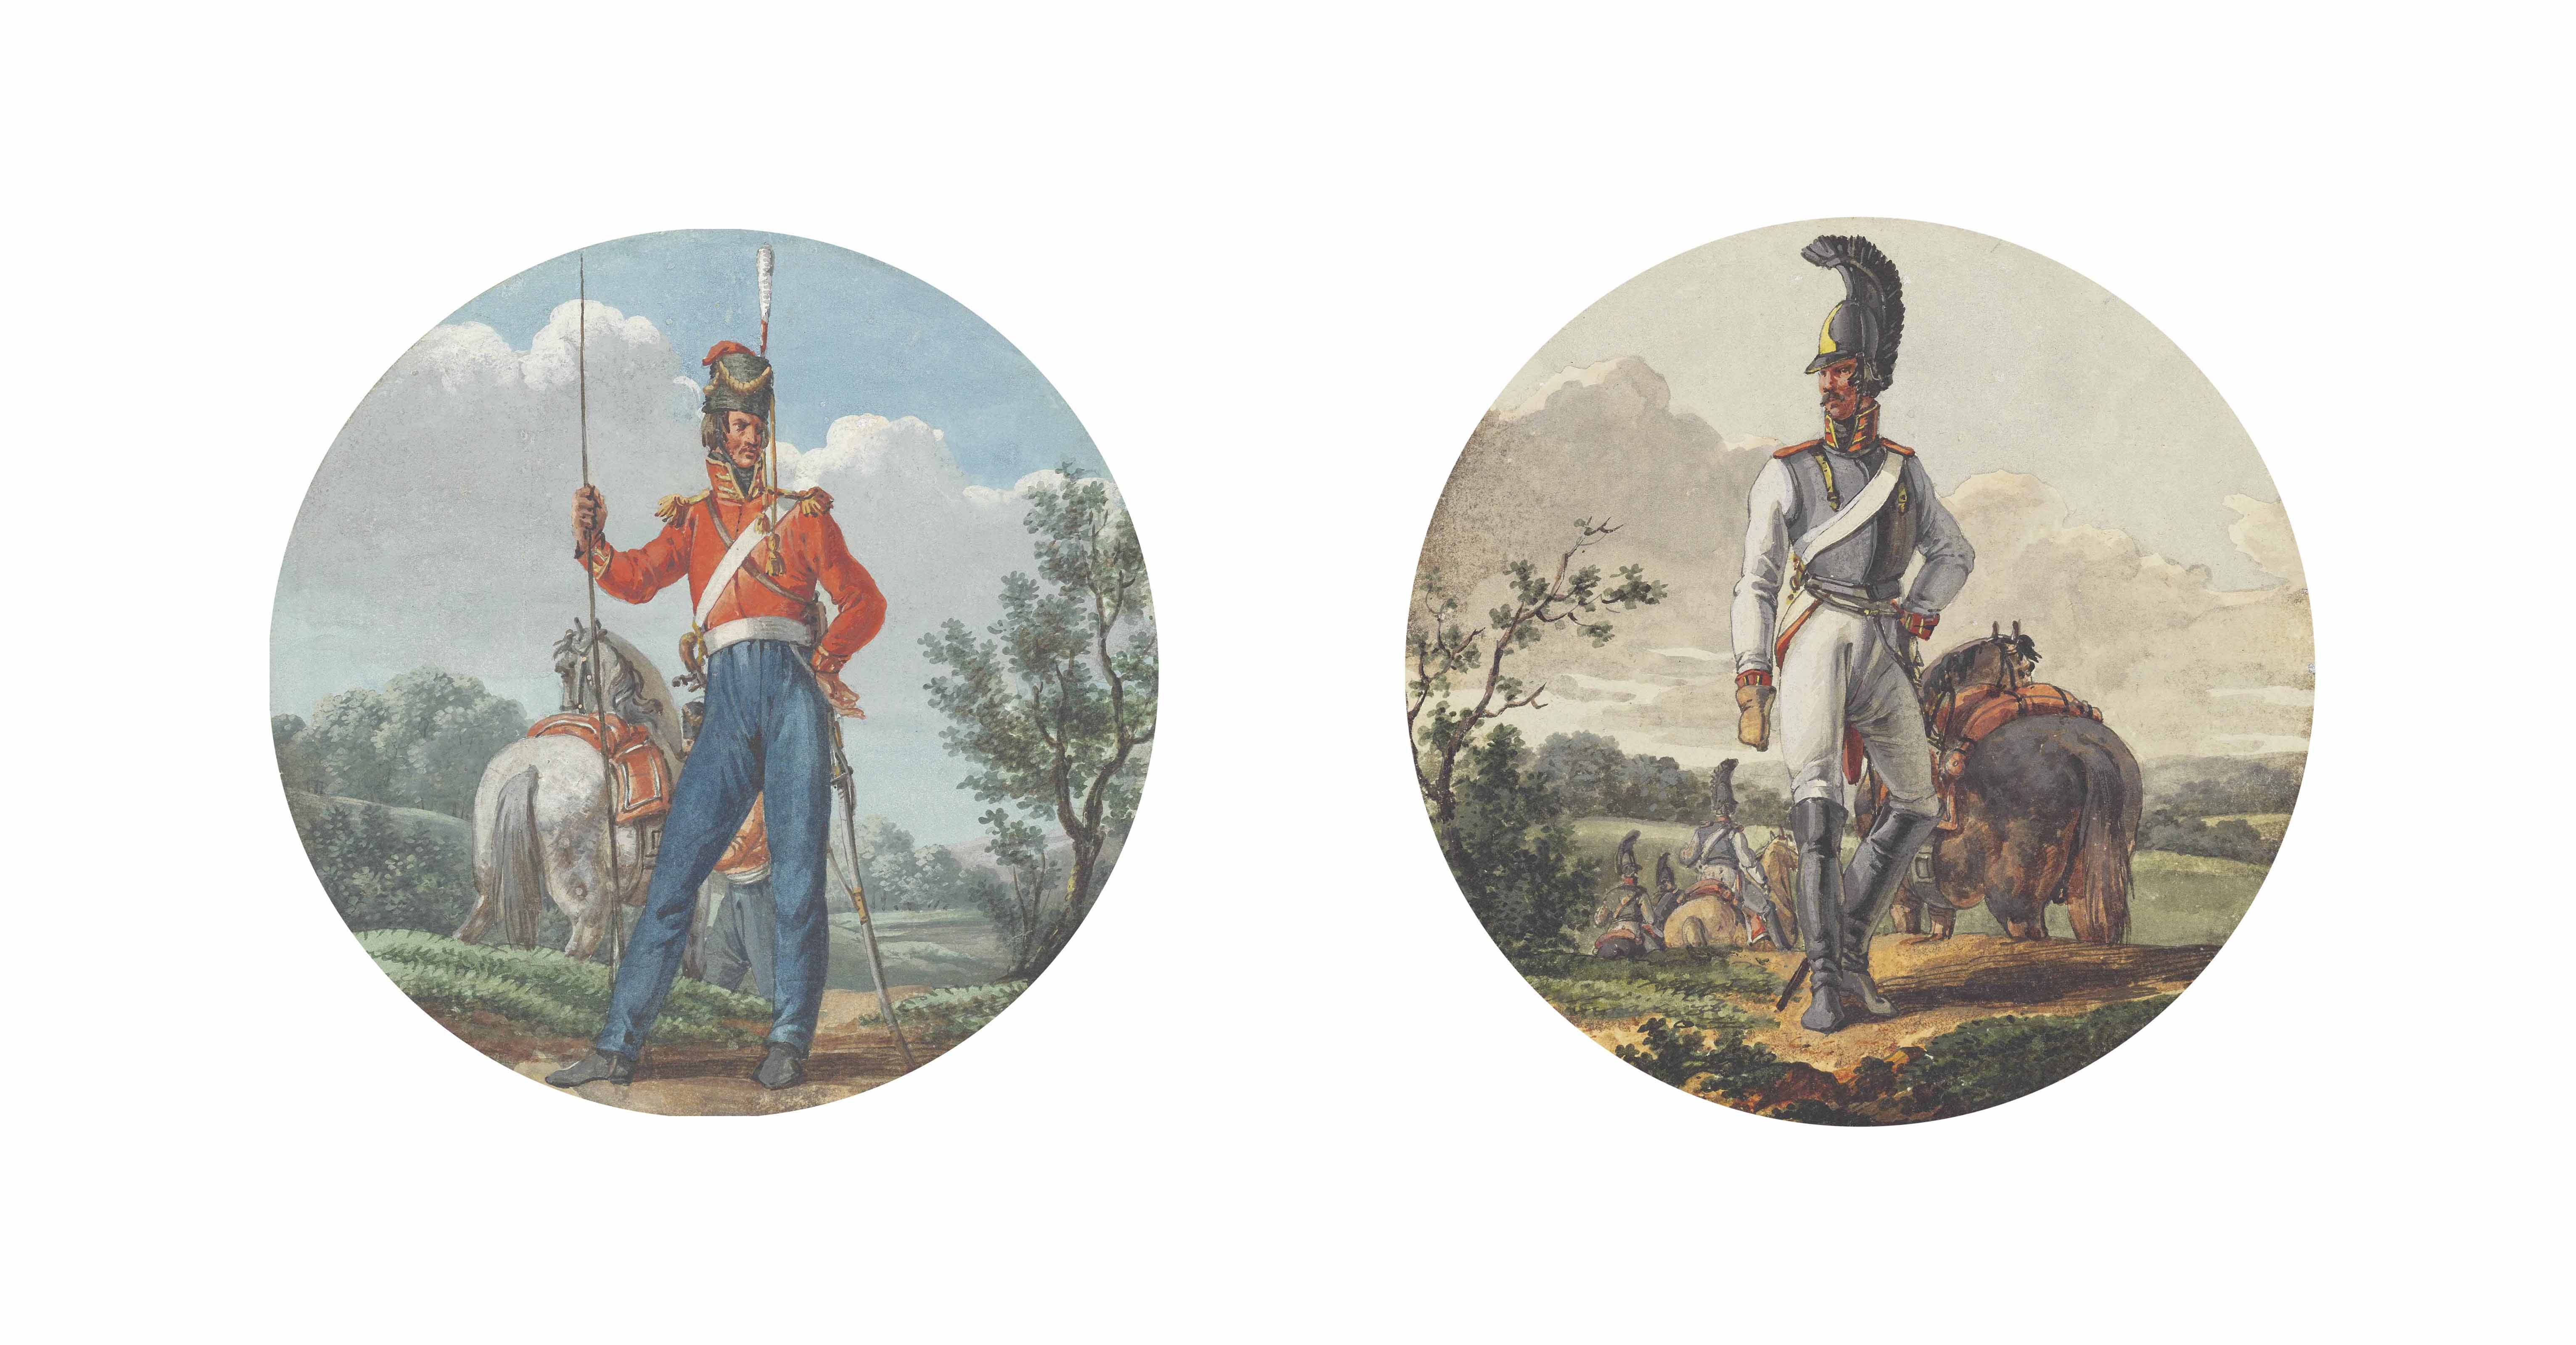 A Prussian lancer; A Prussian cuirassier; and A Prussian dragoon